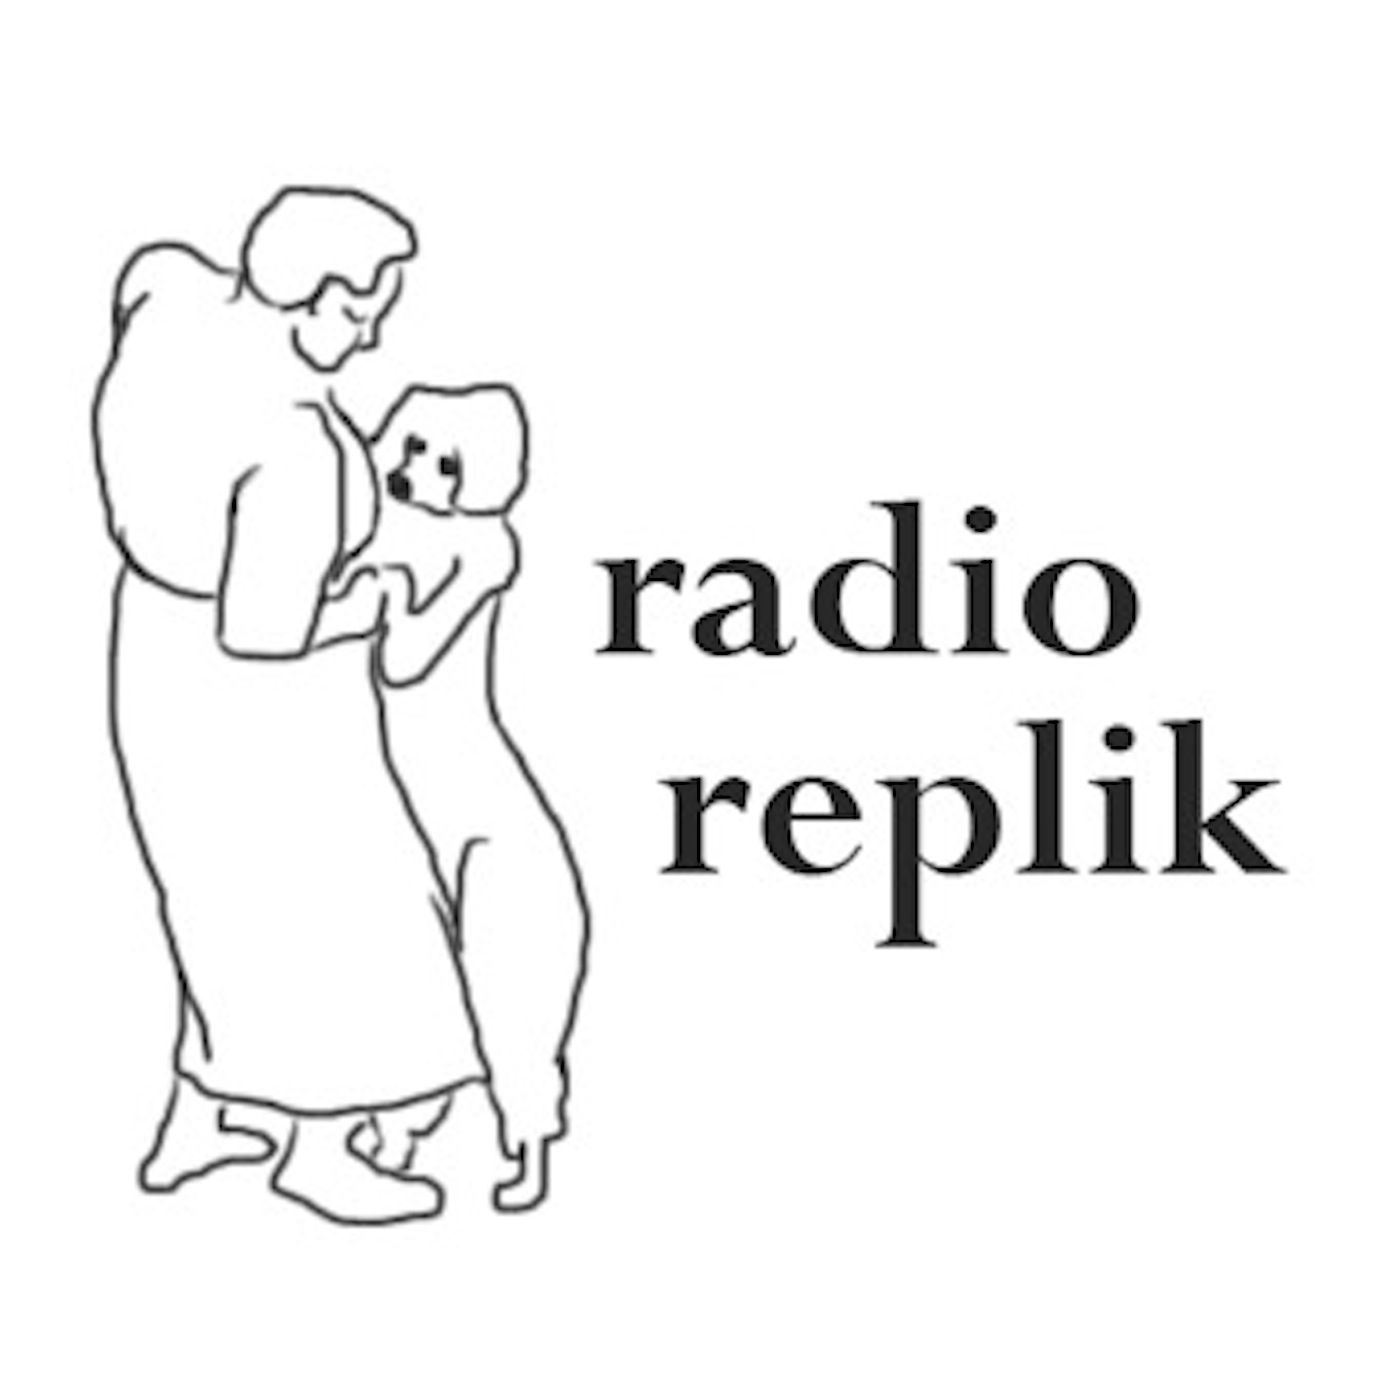 radio replik